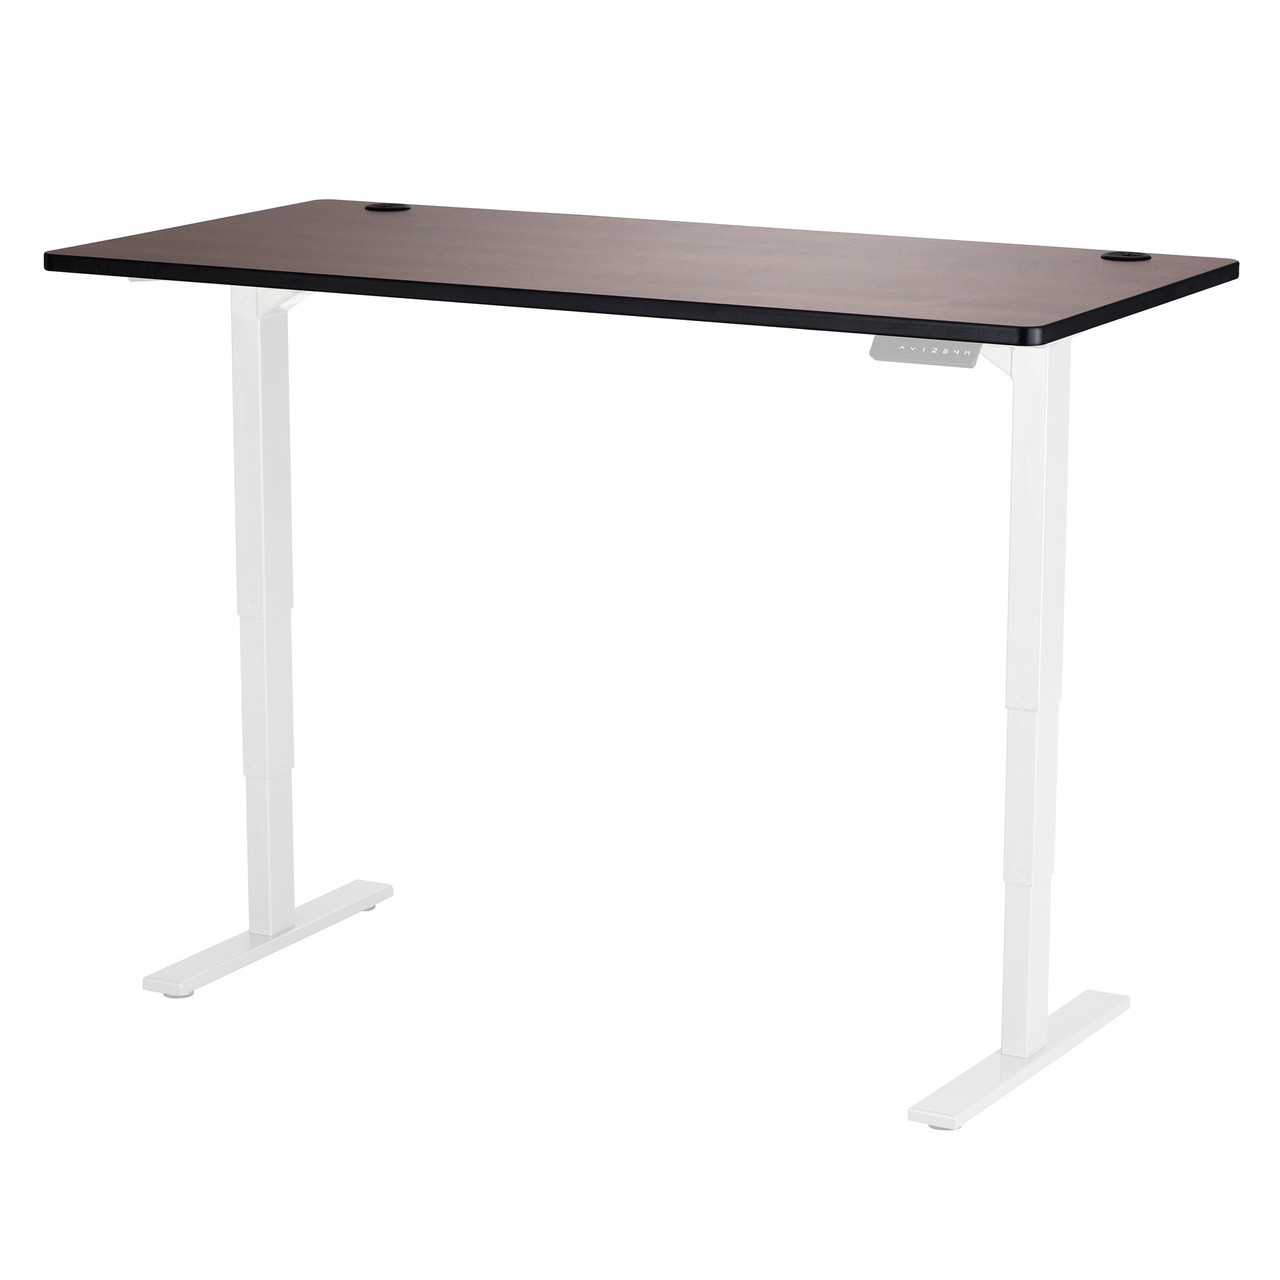 "60 x 30"" Top for Height-Adjustable Table"